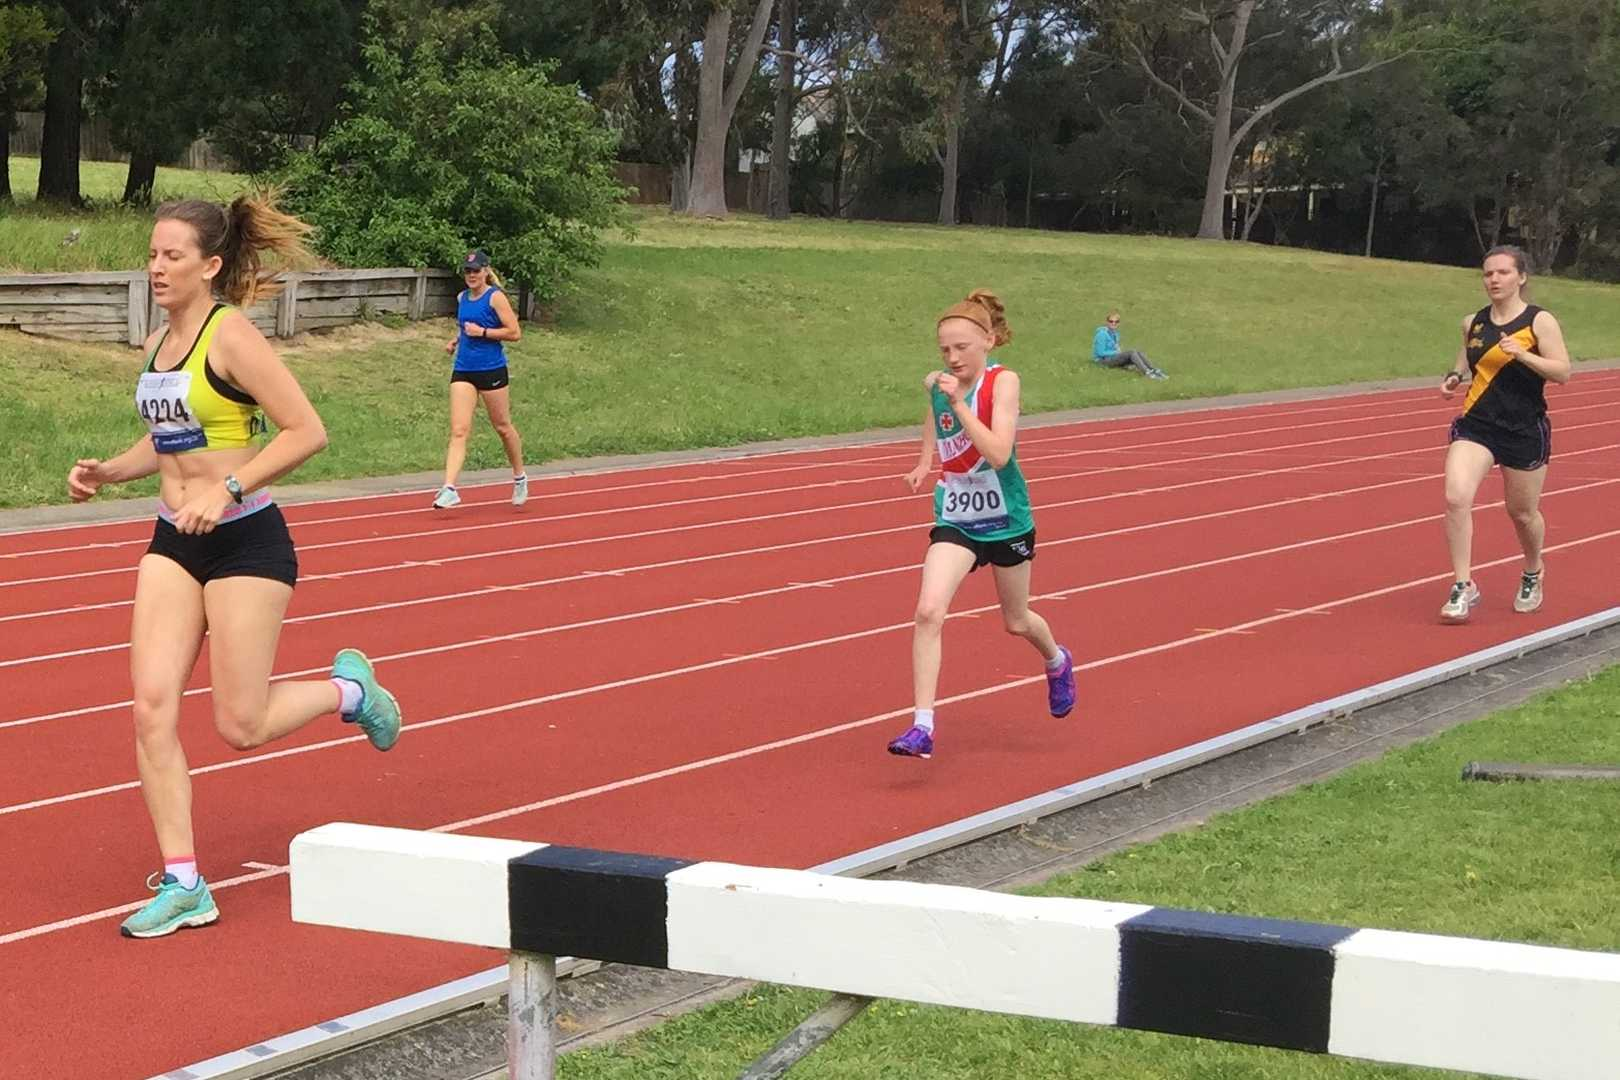 Freya working hard in the 800m